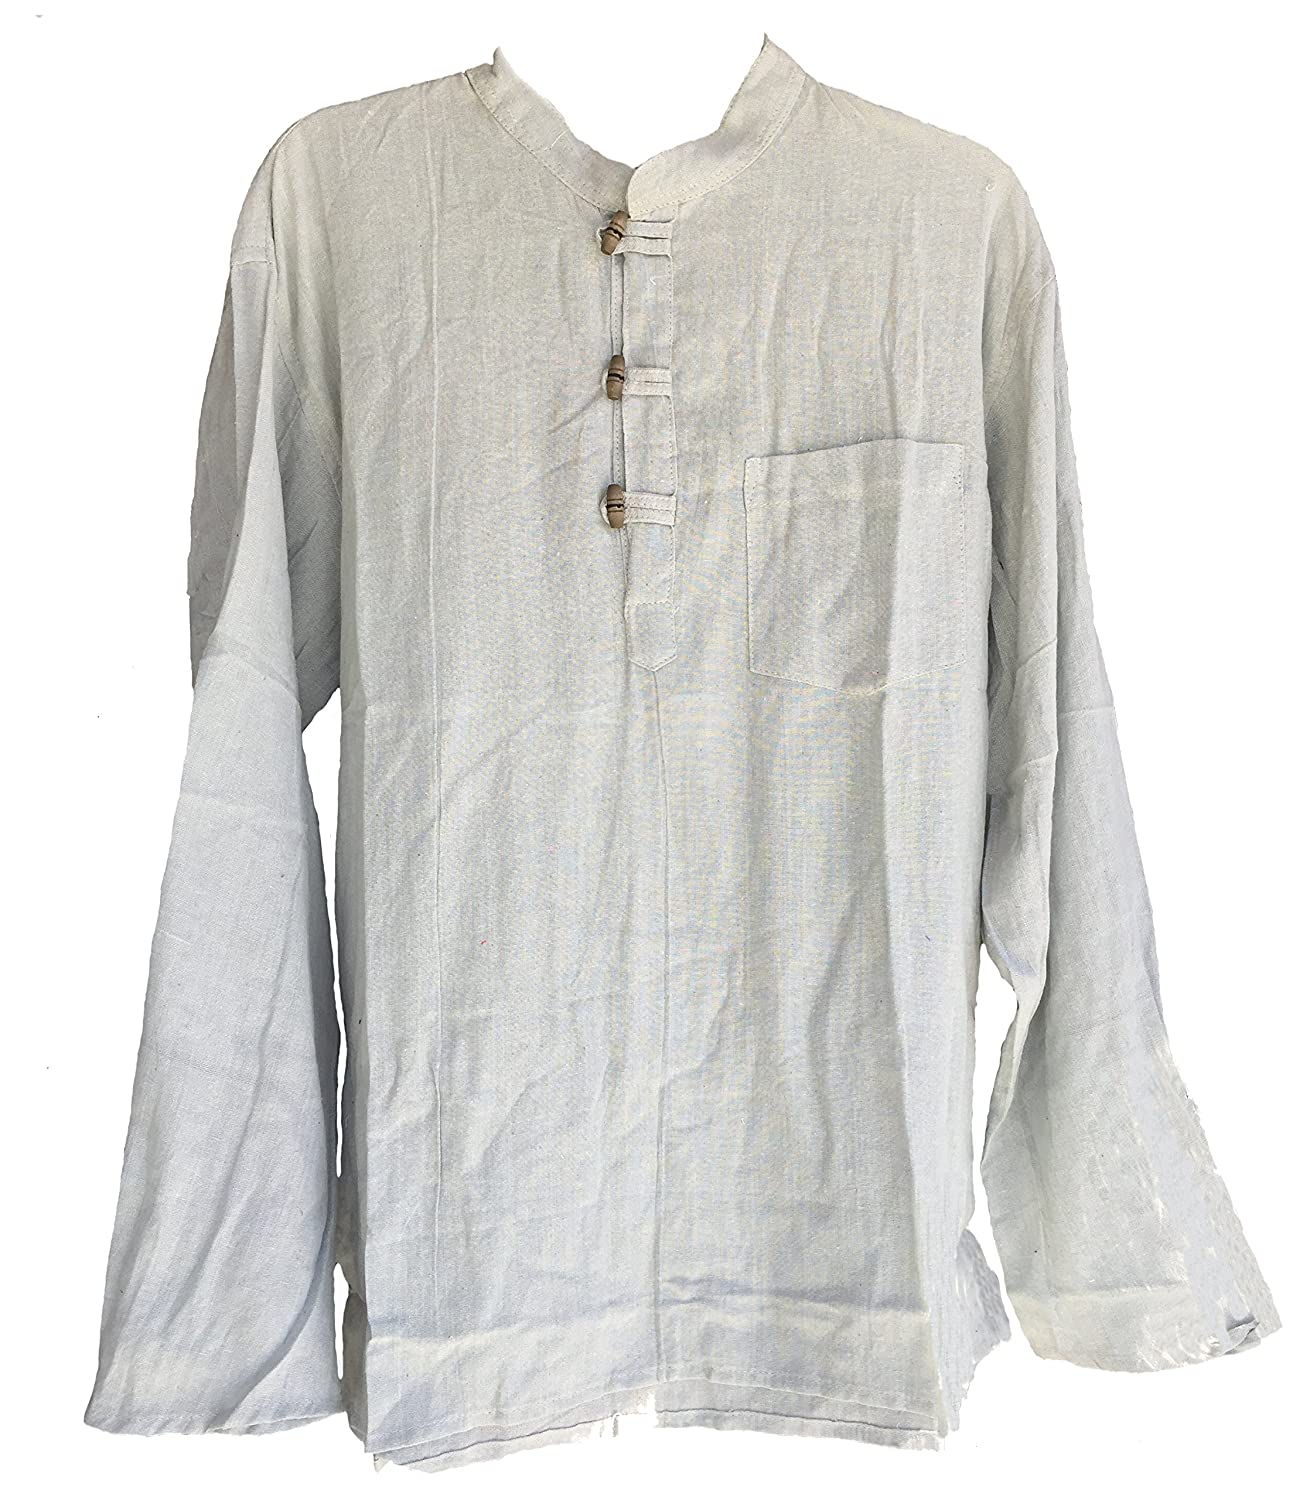 Men's Hand Loomed Gray Cotton Banded Collar Tunic